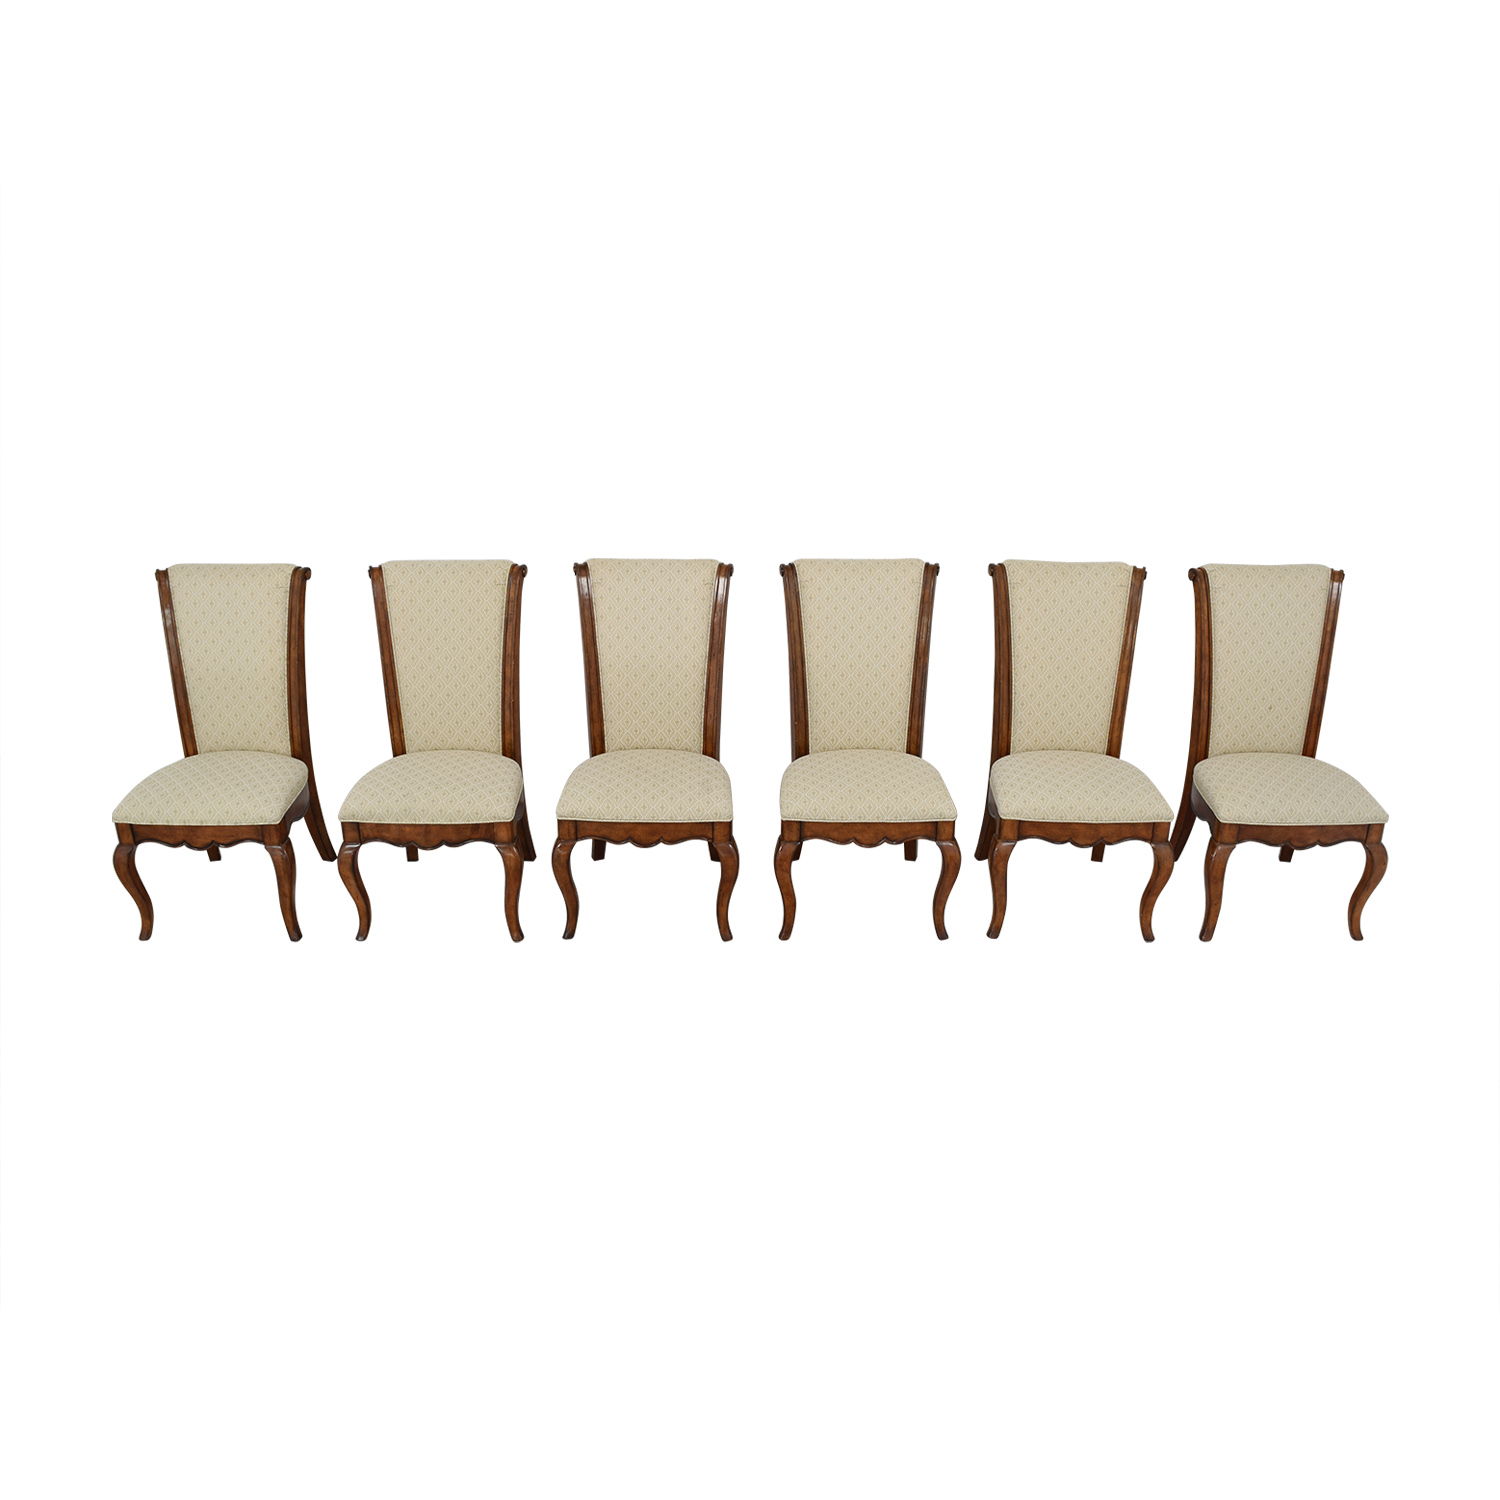 shop Drexel Heritage Extendable Dining Chairs Drexel Heritage